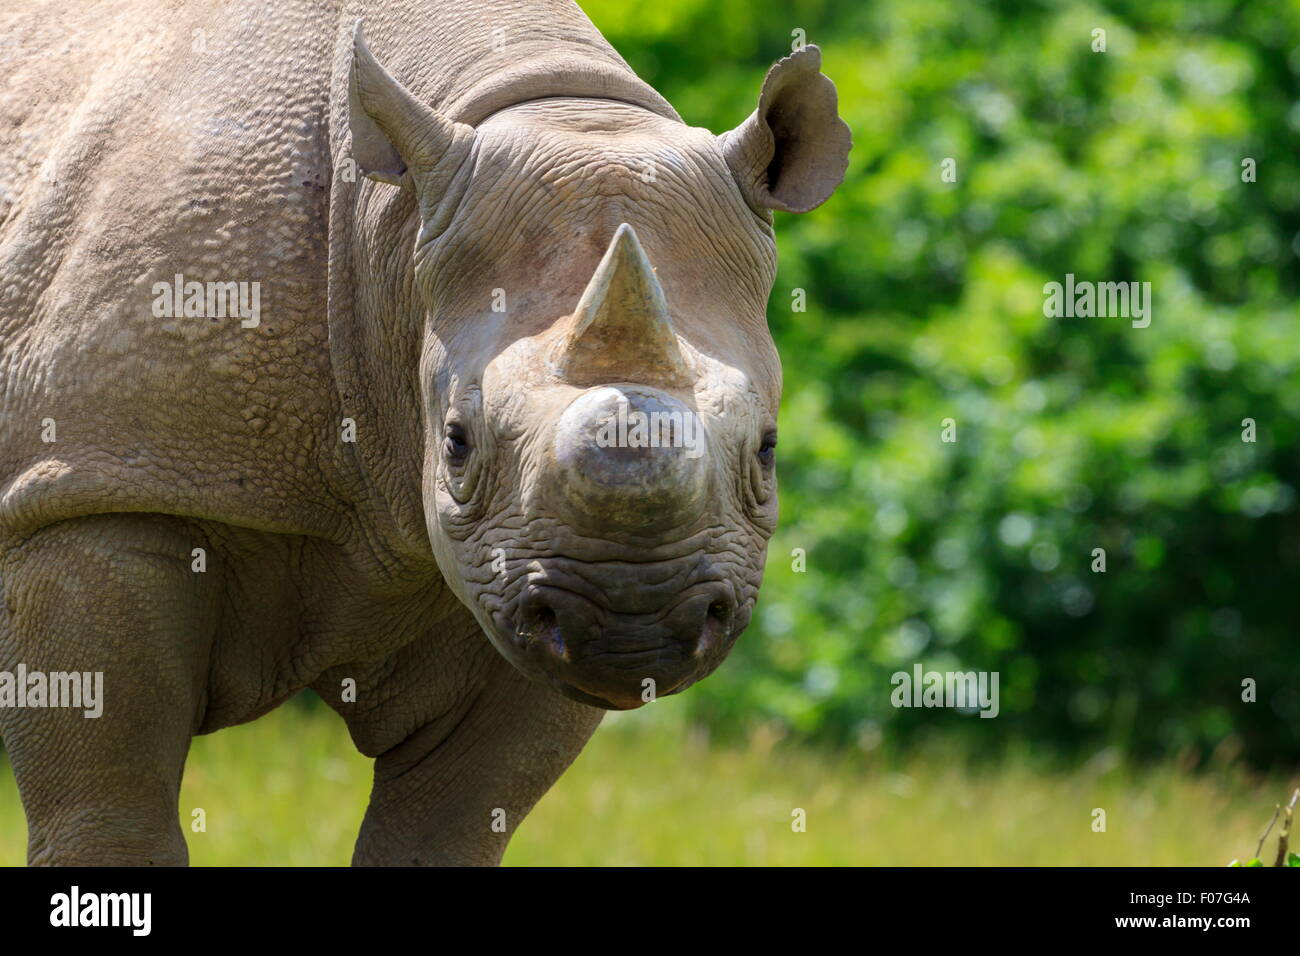 Eastern Black Rhinoceros - Stock Image